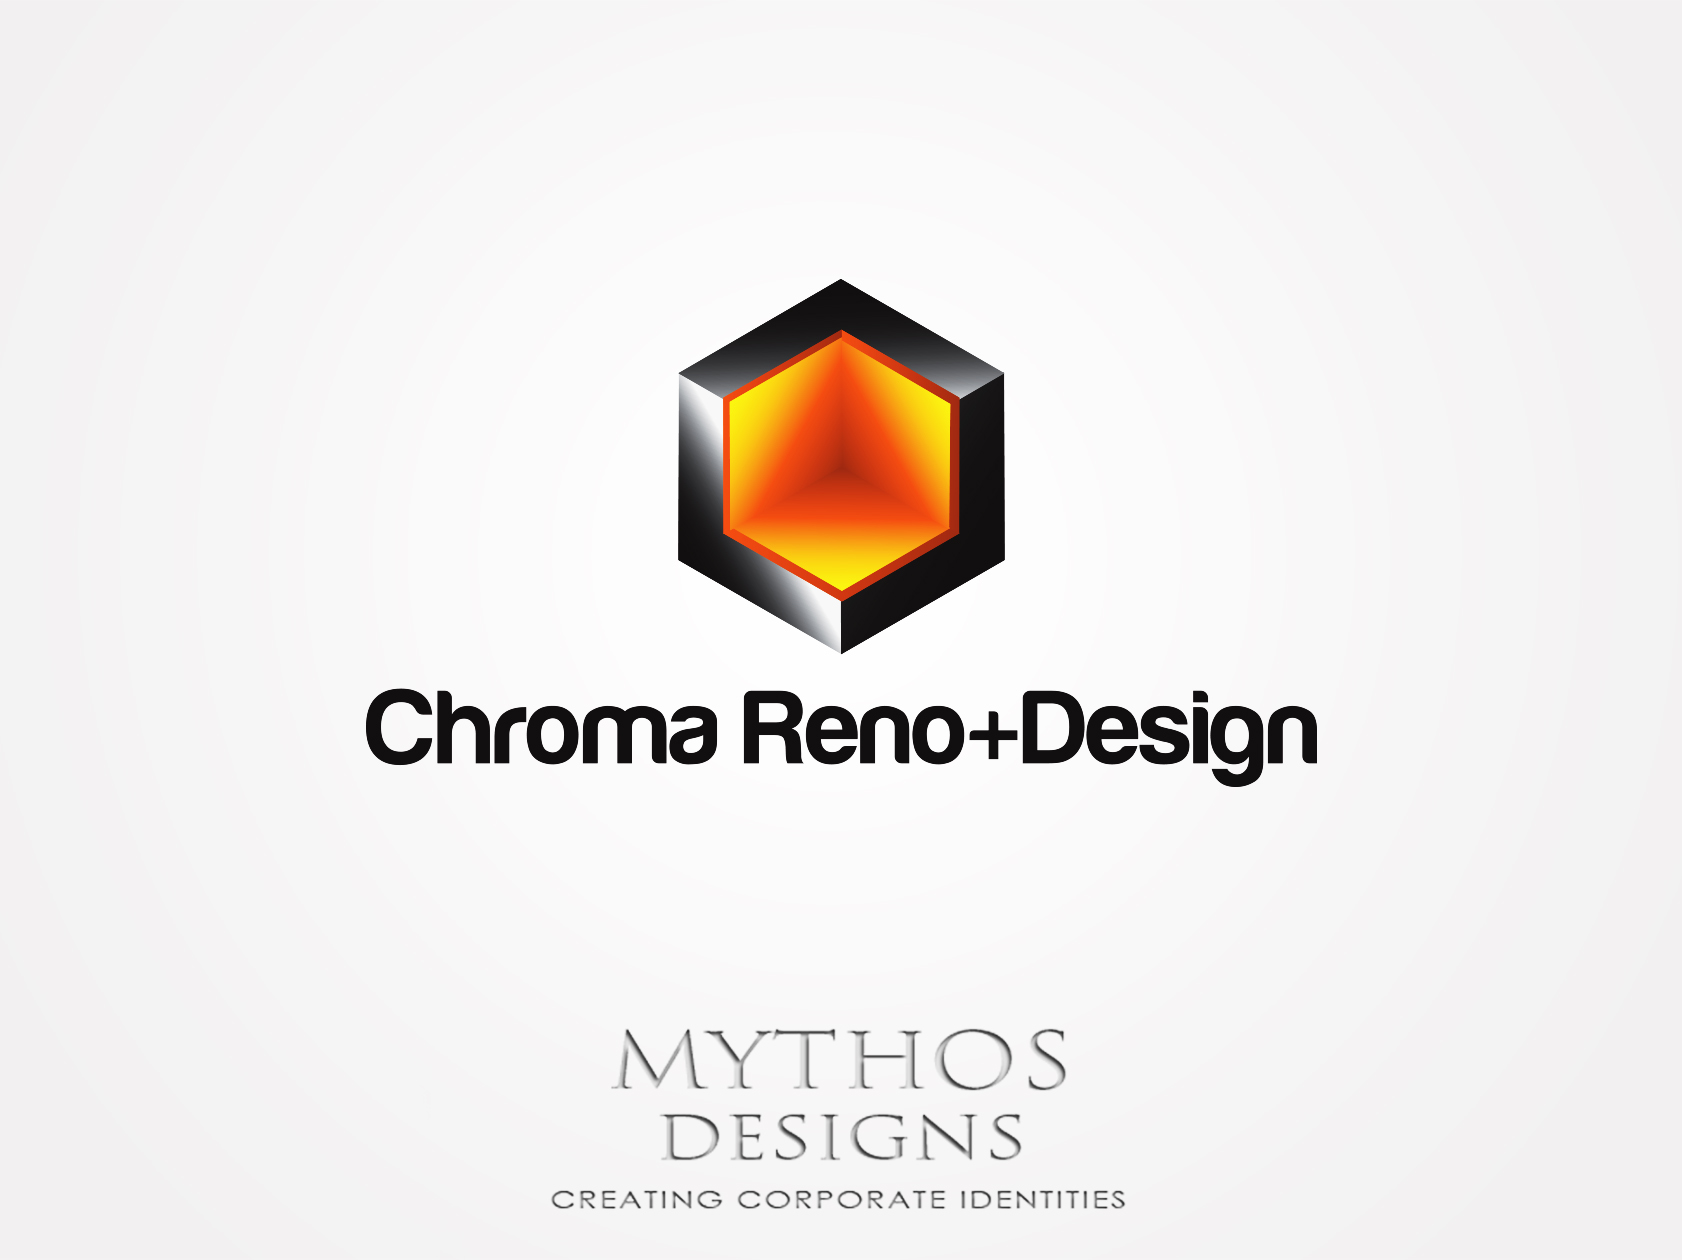 Logo Design by Mythos Designs - Entry No. 268 in the Logo Design Contest Inspiring Logo Design for Chroma Reno+Design.